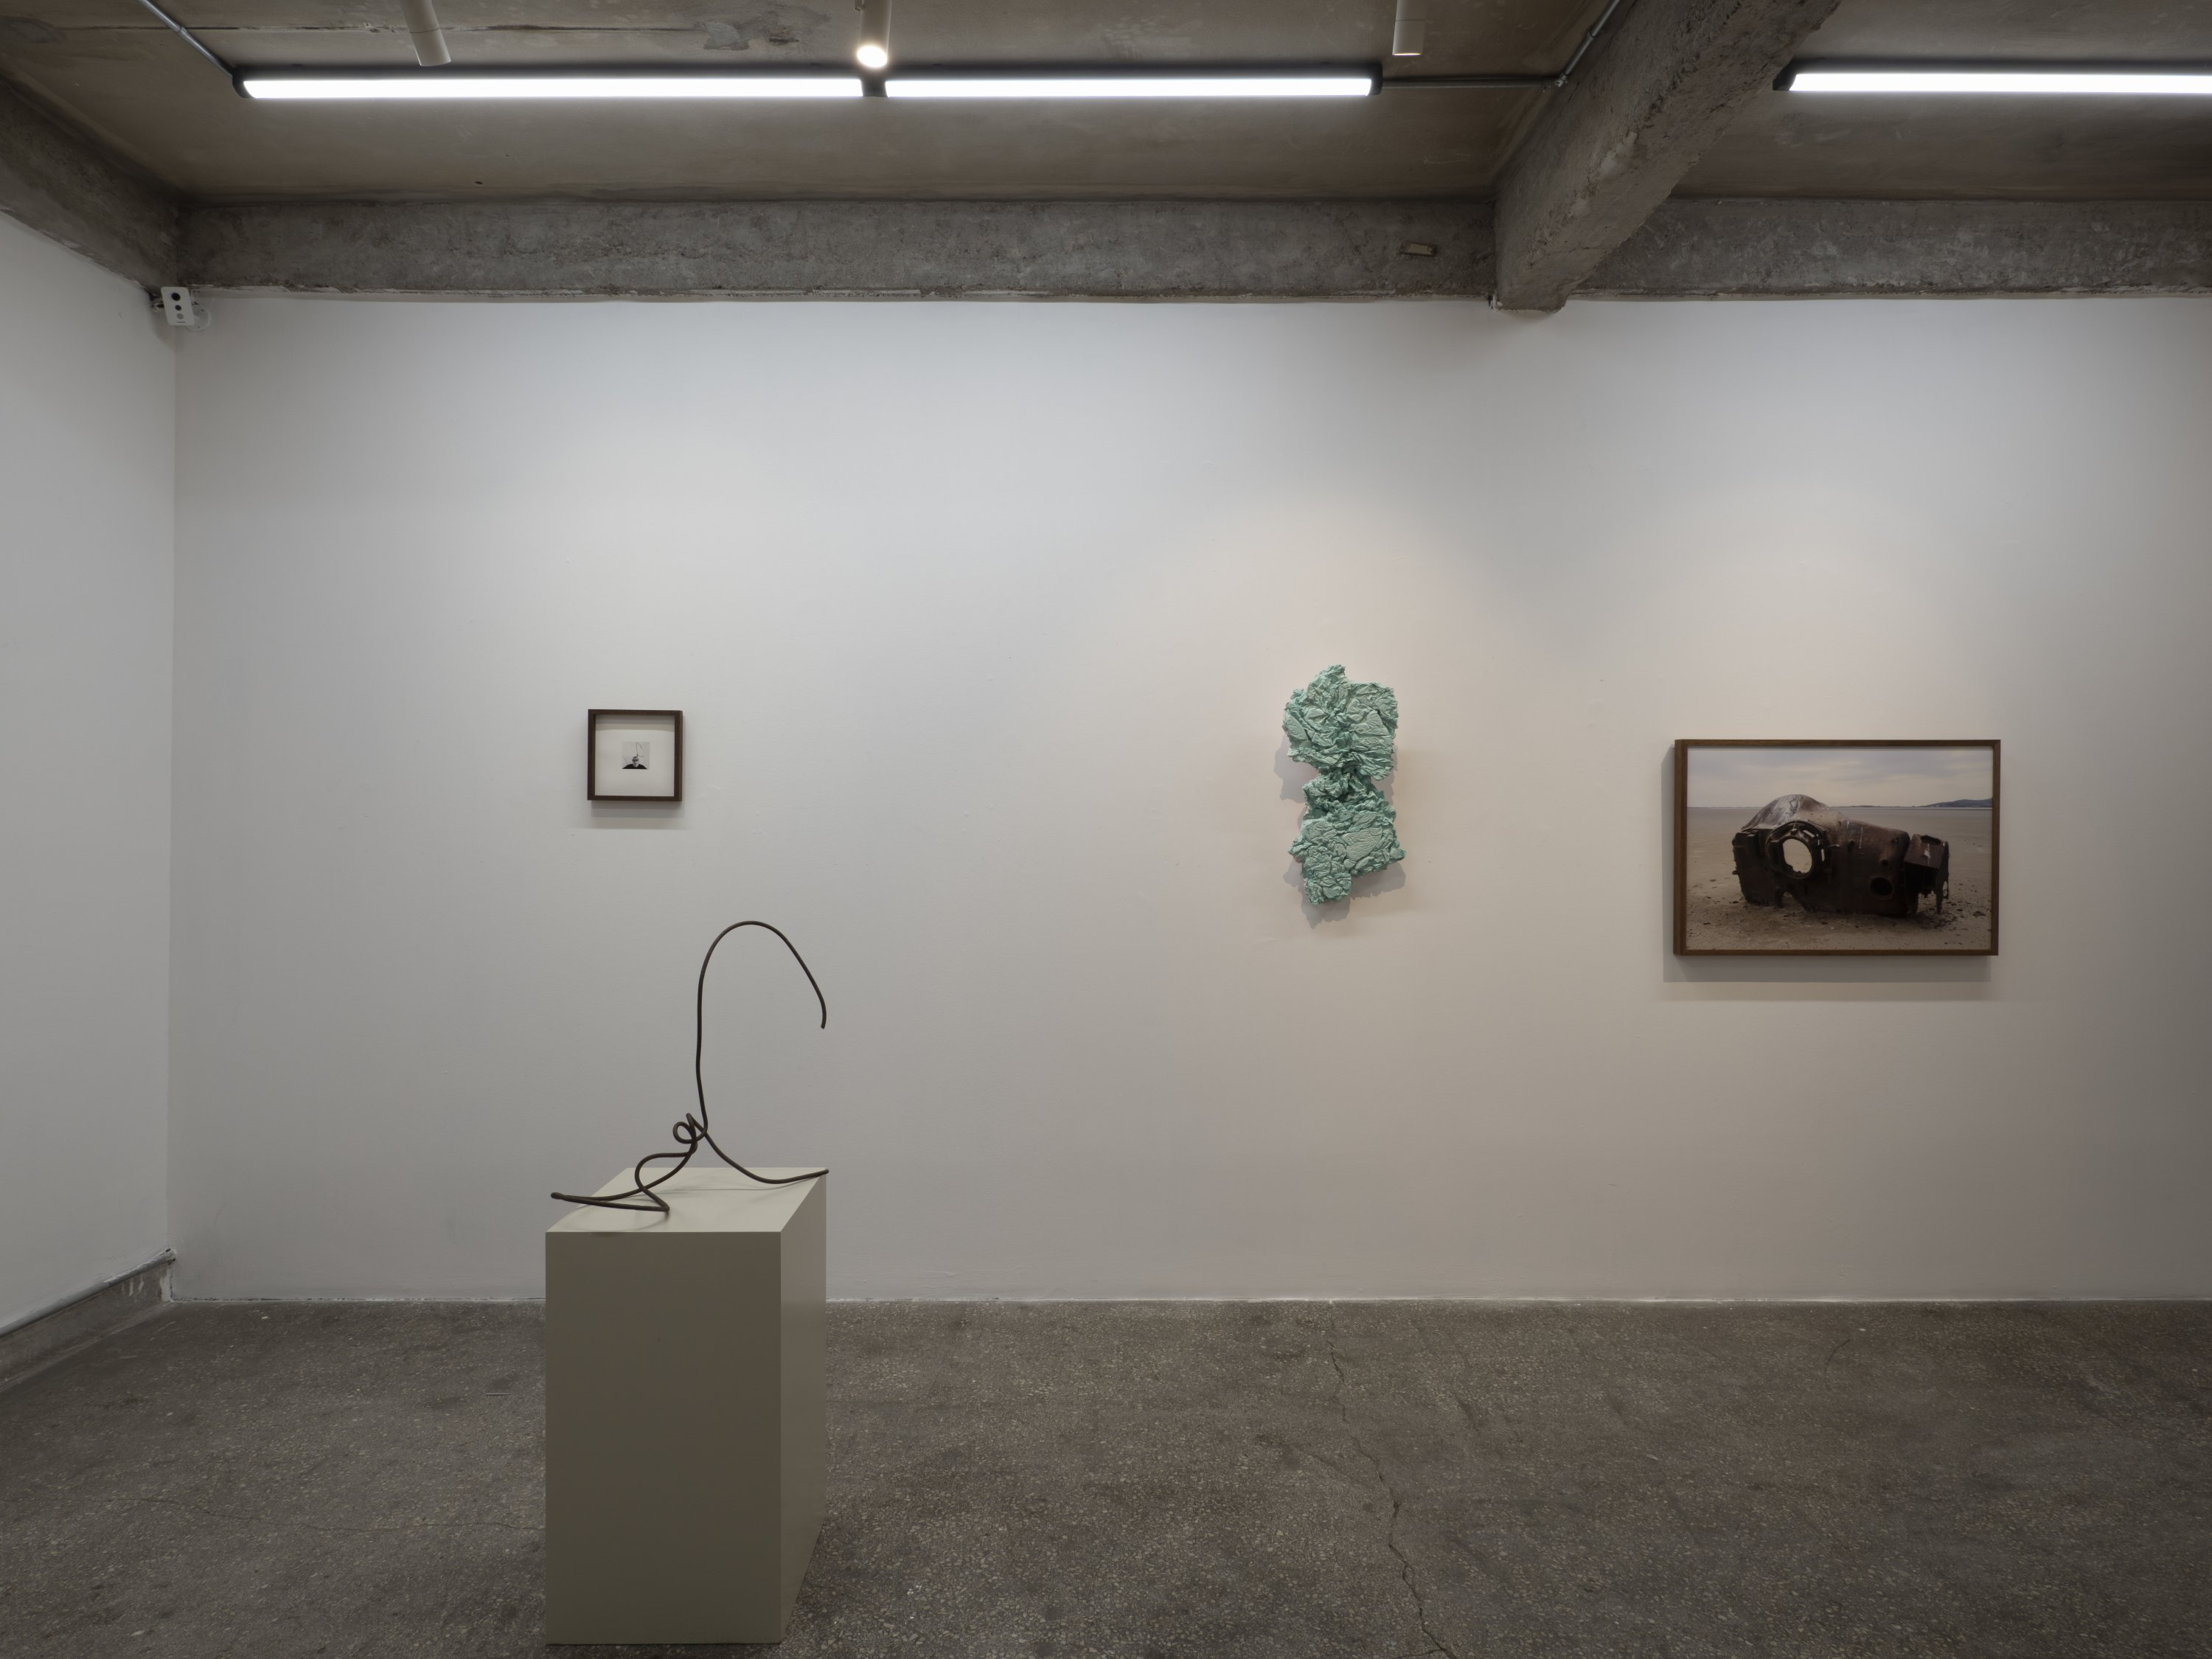 An installation view from